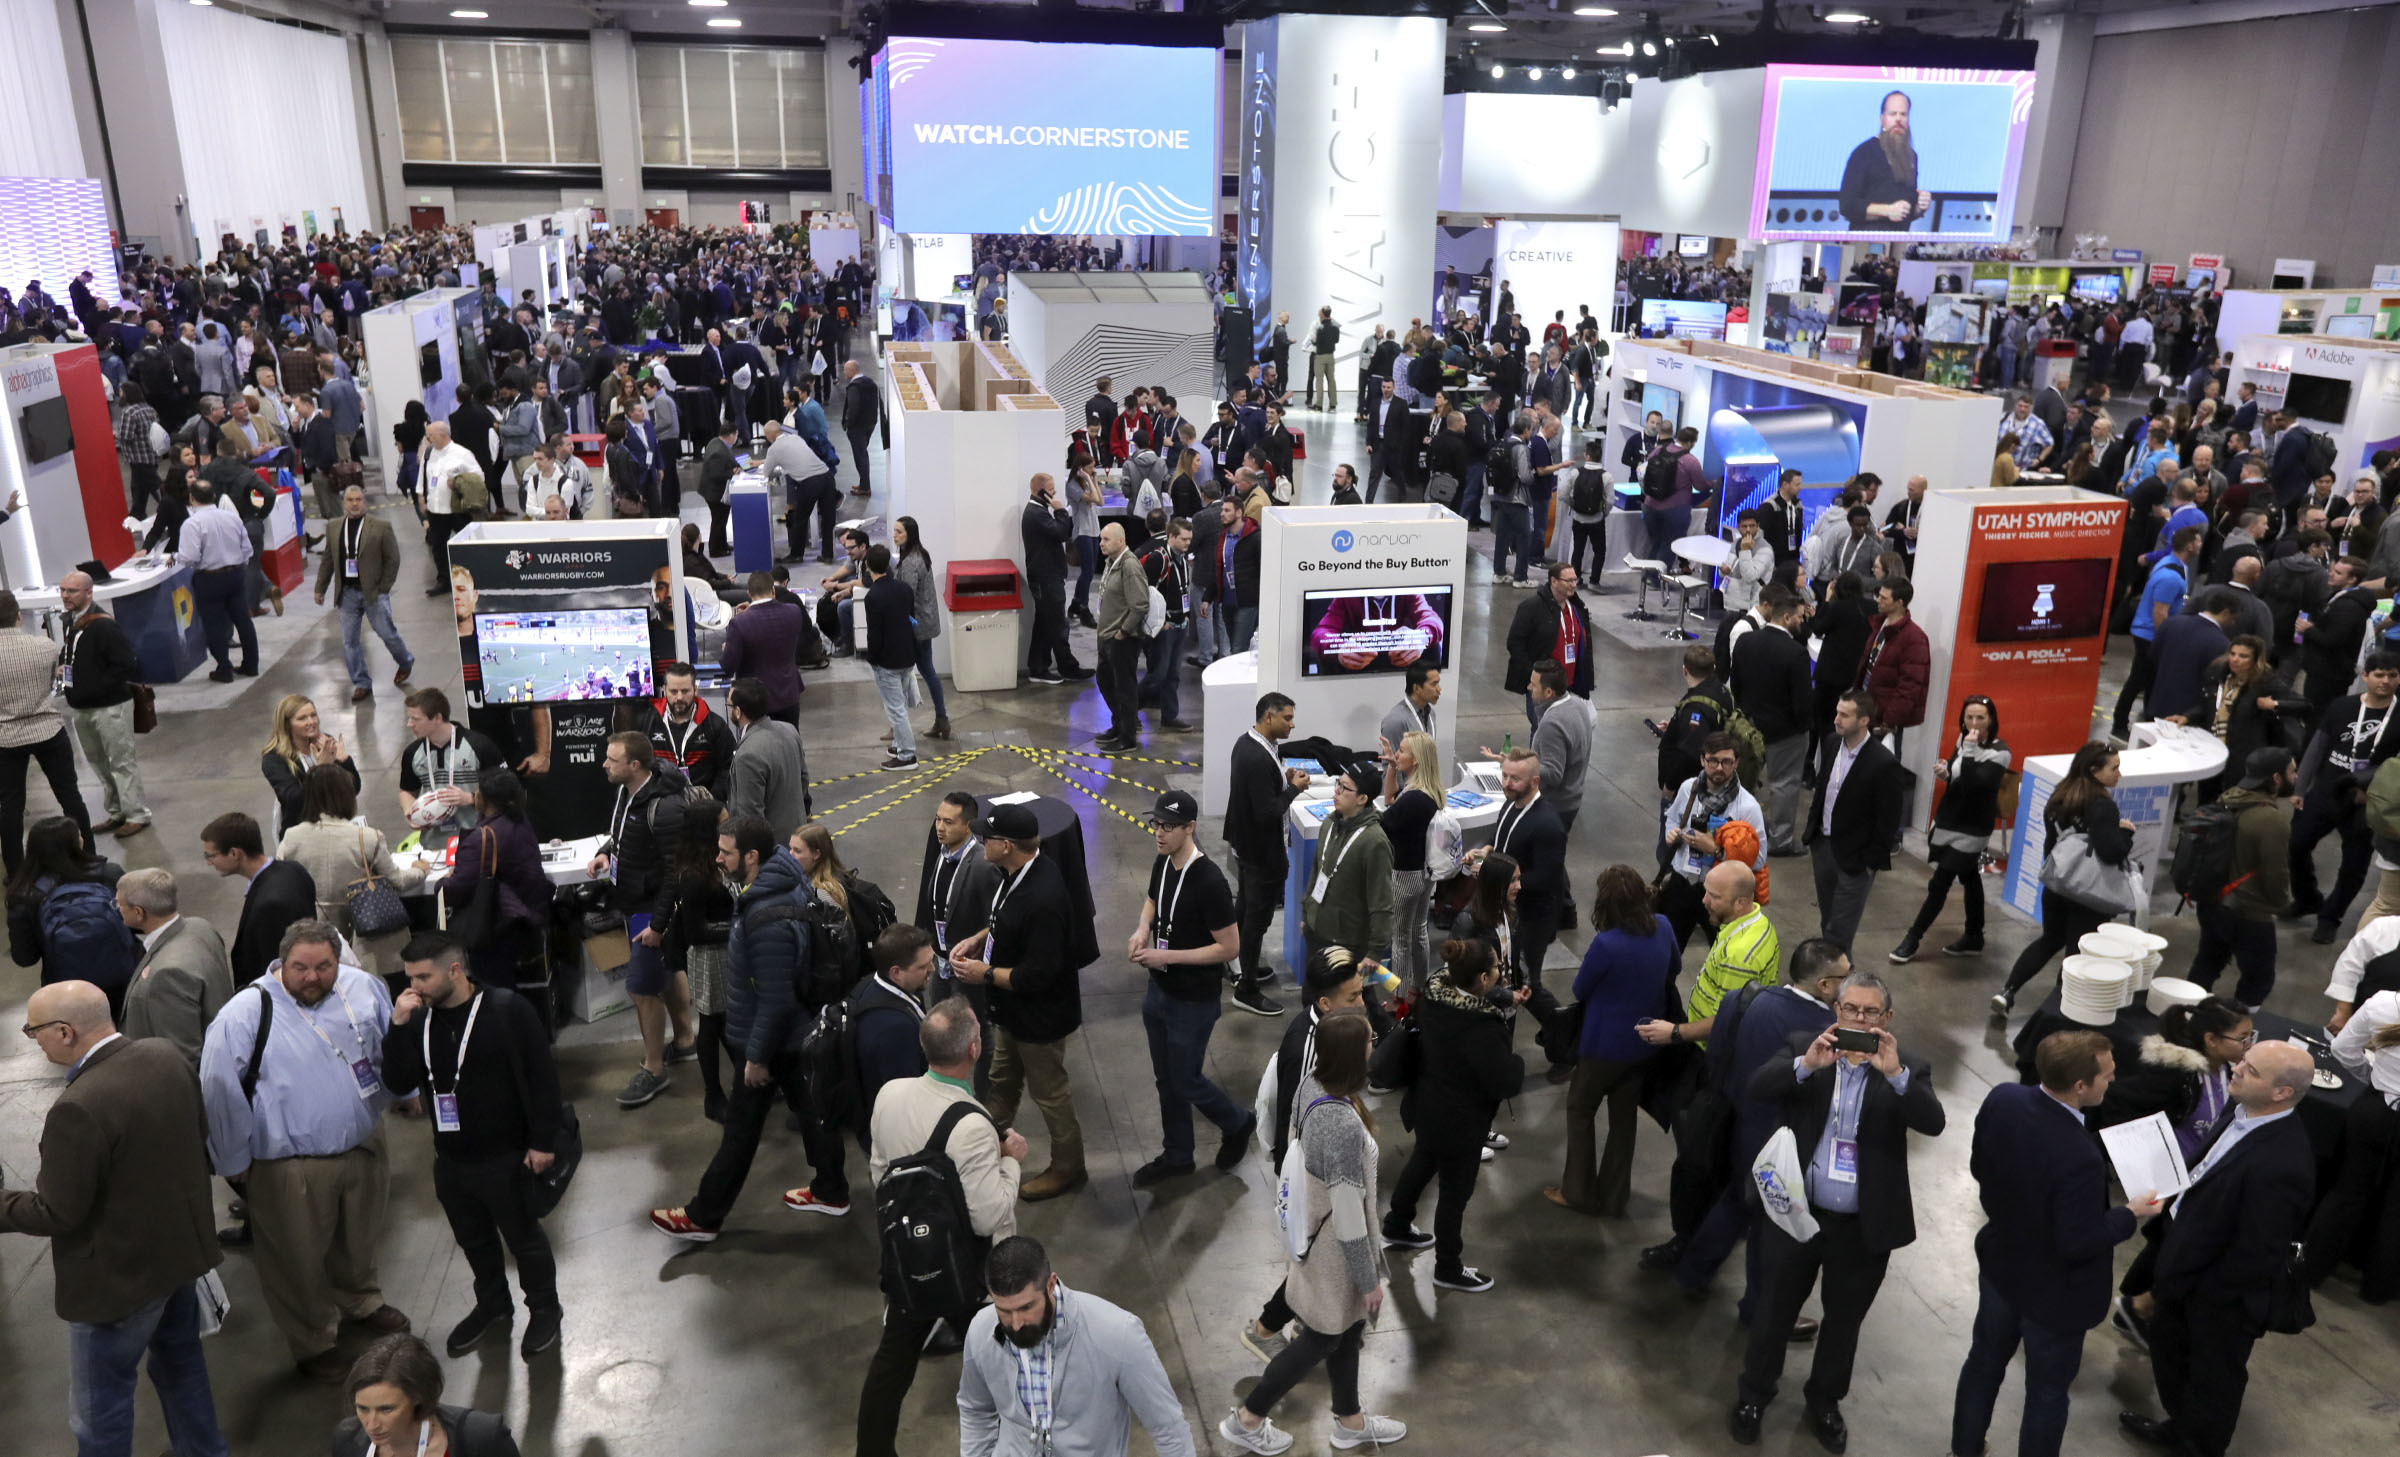 Crowds move through the Silicon Slopes Tech Summit at the Salt Palace Convention Center in Salt Lake City on Thursday, Jan. 31, 2019.